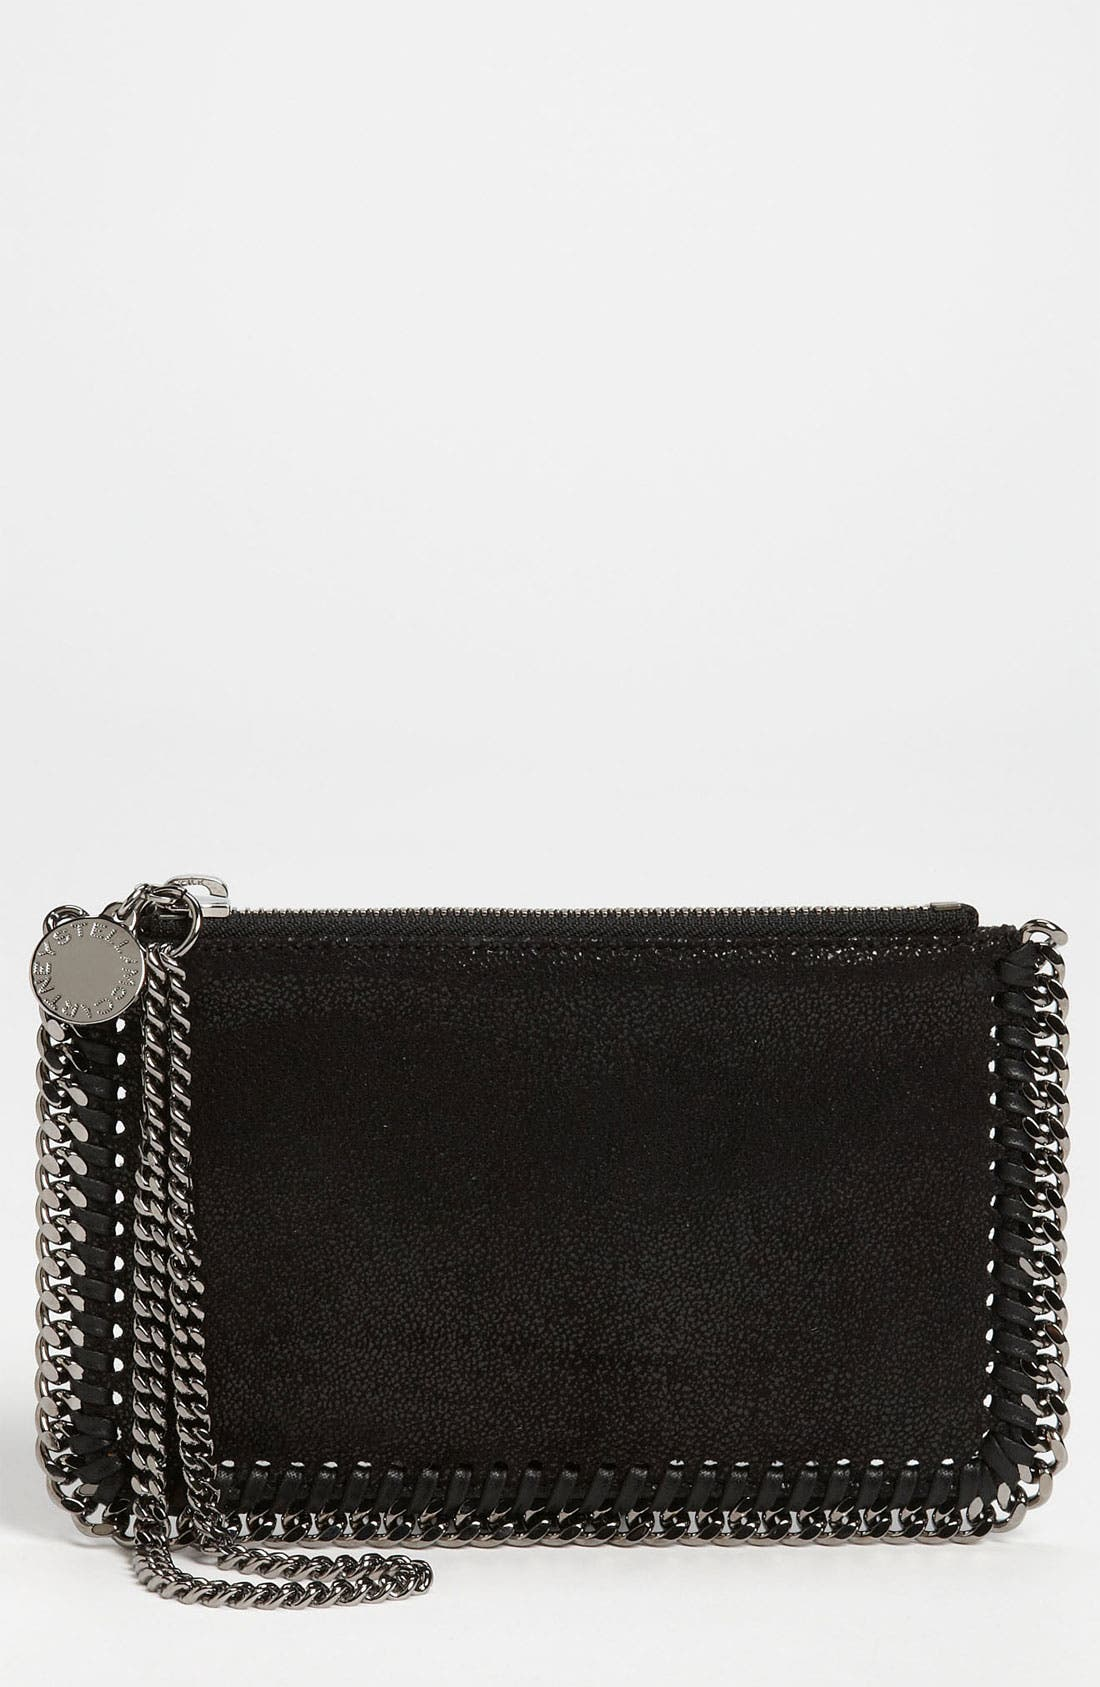 Alternate Image 1 Selected - Stella McCartney 'Falabella' Shaggy Deer Wristlet